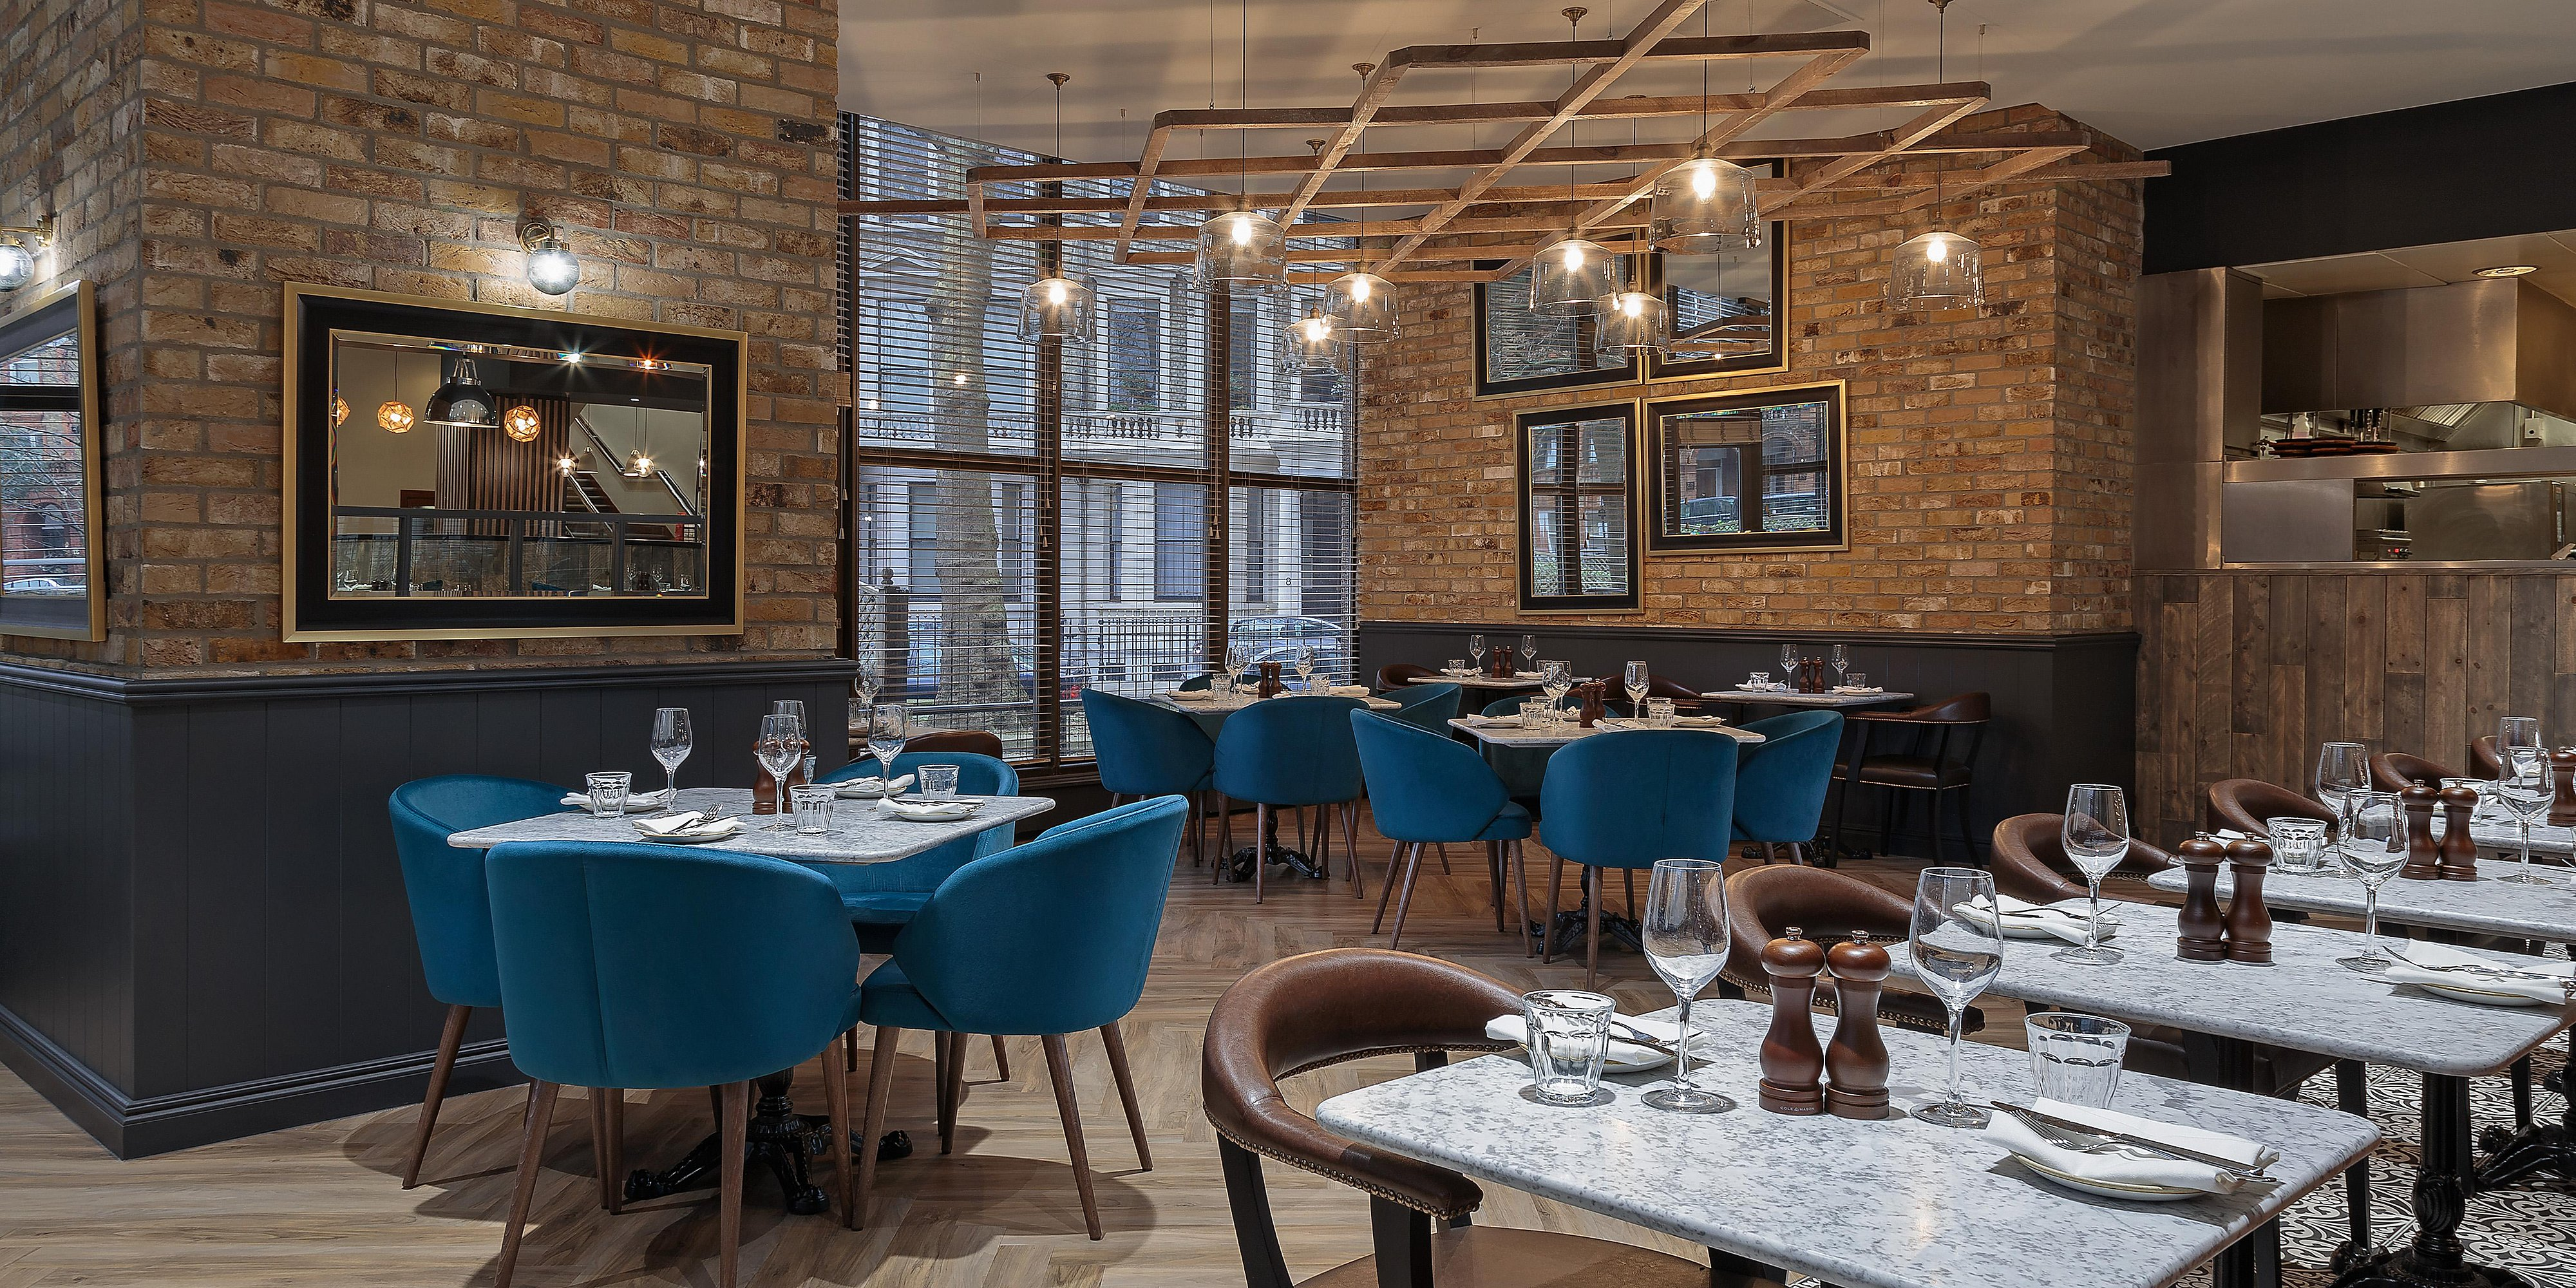 Jay Rayner's restaurant review of Holiday Inn Kensington reveals a shocking meal